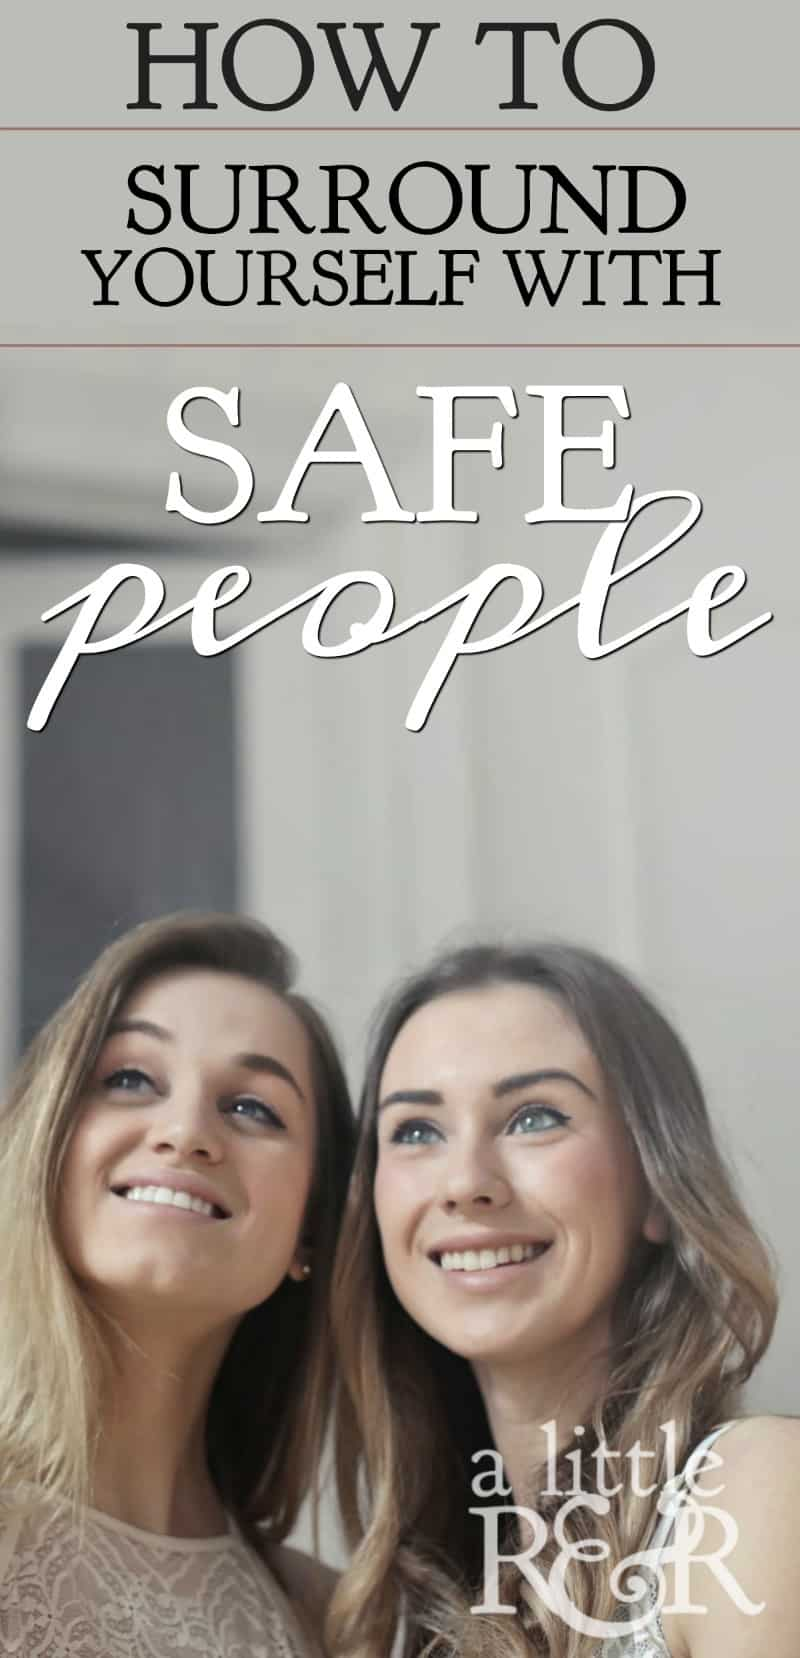 How to Surround Yourself With Safe People, because emotionally healthy and strong people have a solid inner circle of safe friends around them. #alittlerandr #safepeople #friendships #healthyrelationships